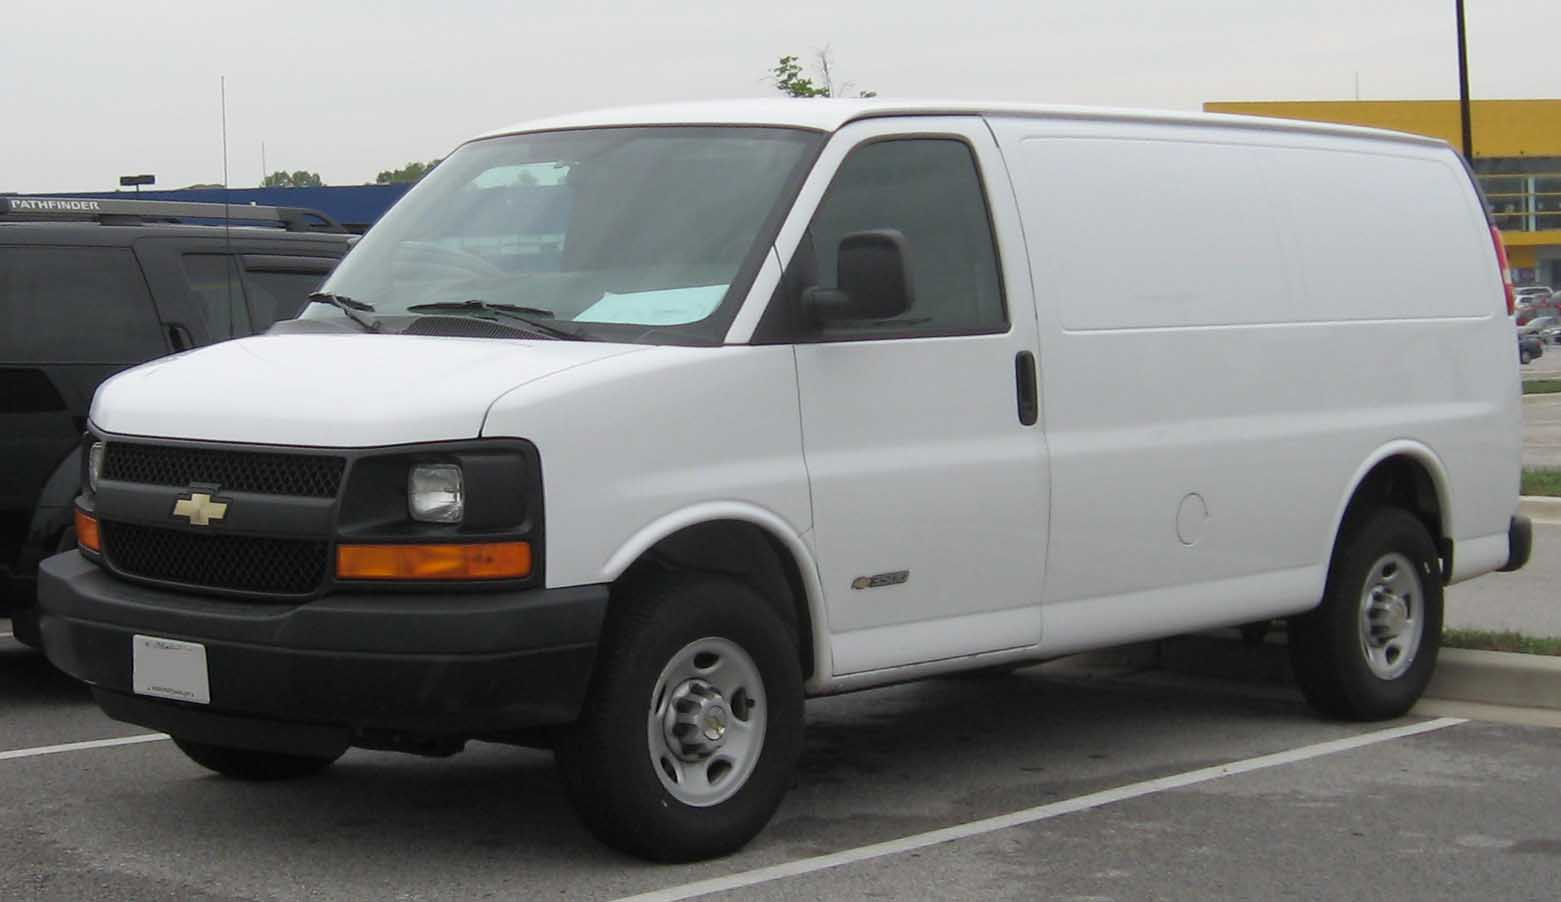 File Chevrolet Express Van together with Delco Am Fm Radio Wiring Diagram also Chevrolet Malibu Engine Diagram furthermore Watch additionally Ignition Control Module. on chevy venture wiring diagram